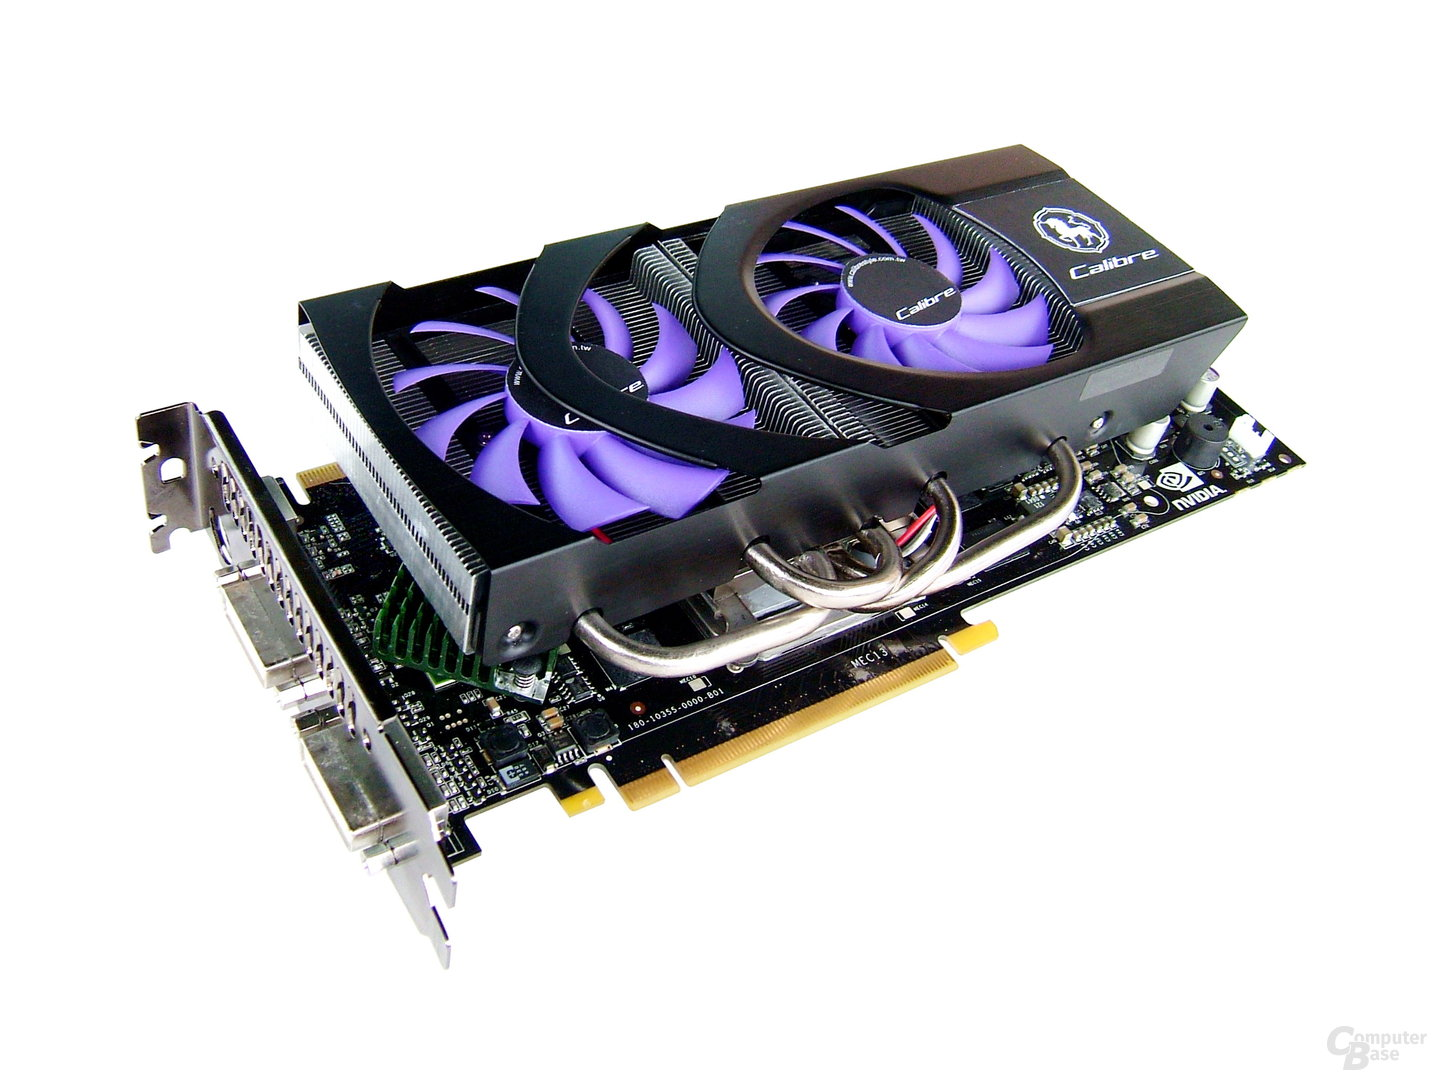 Calibre GeForce 8800 GTX